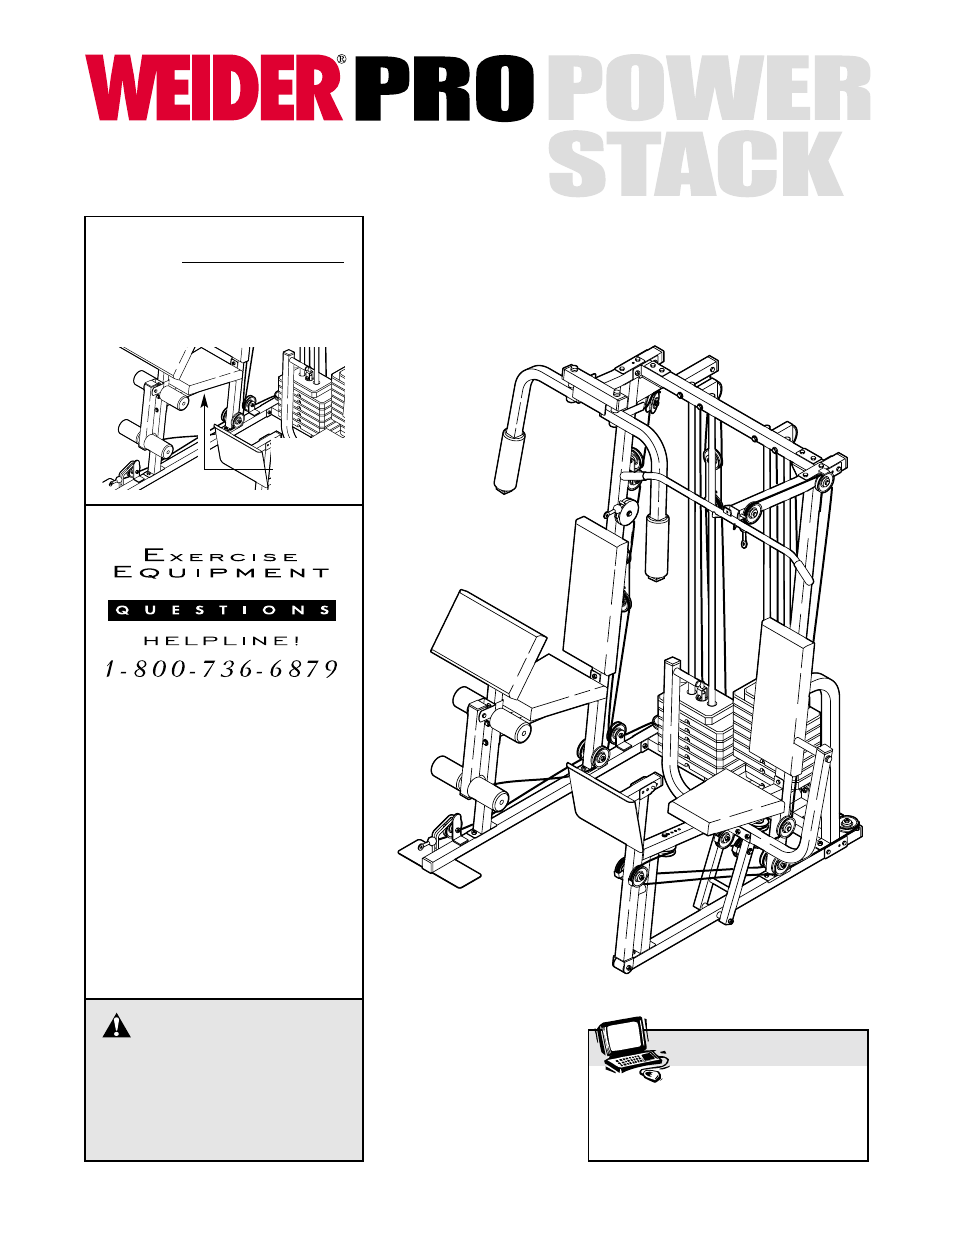 weider pro power stack 831 159831 user manual